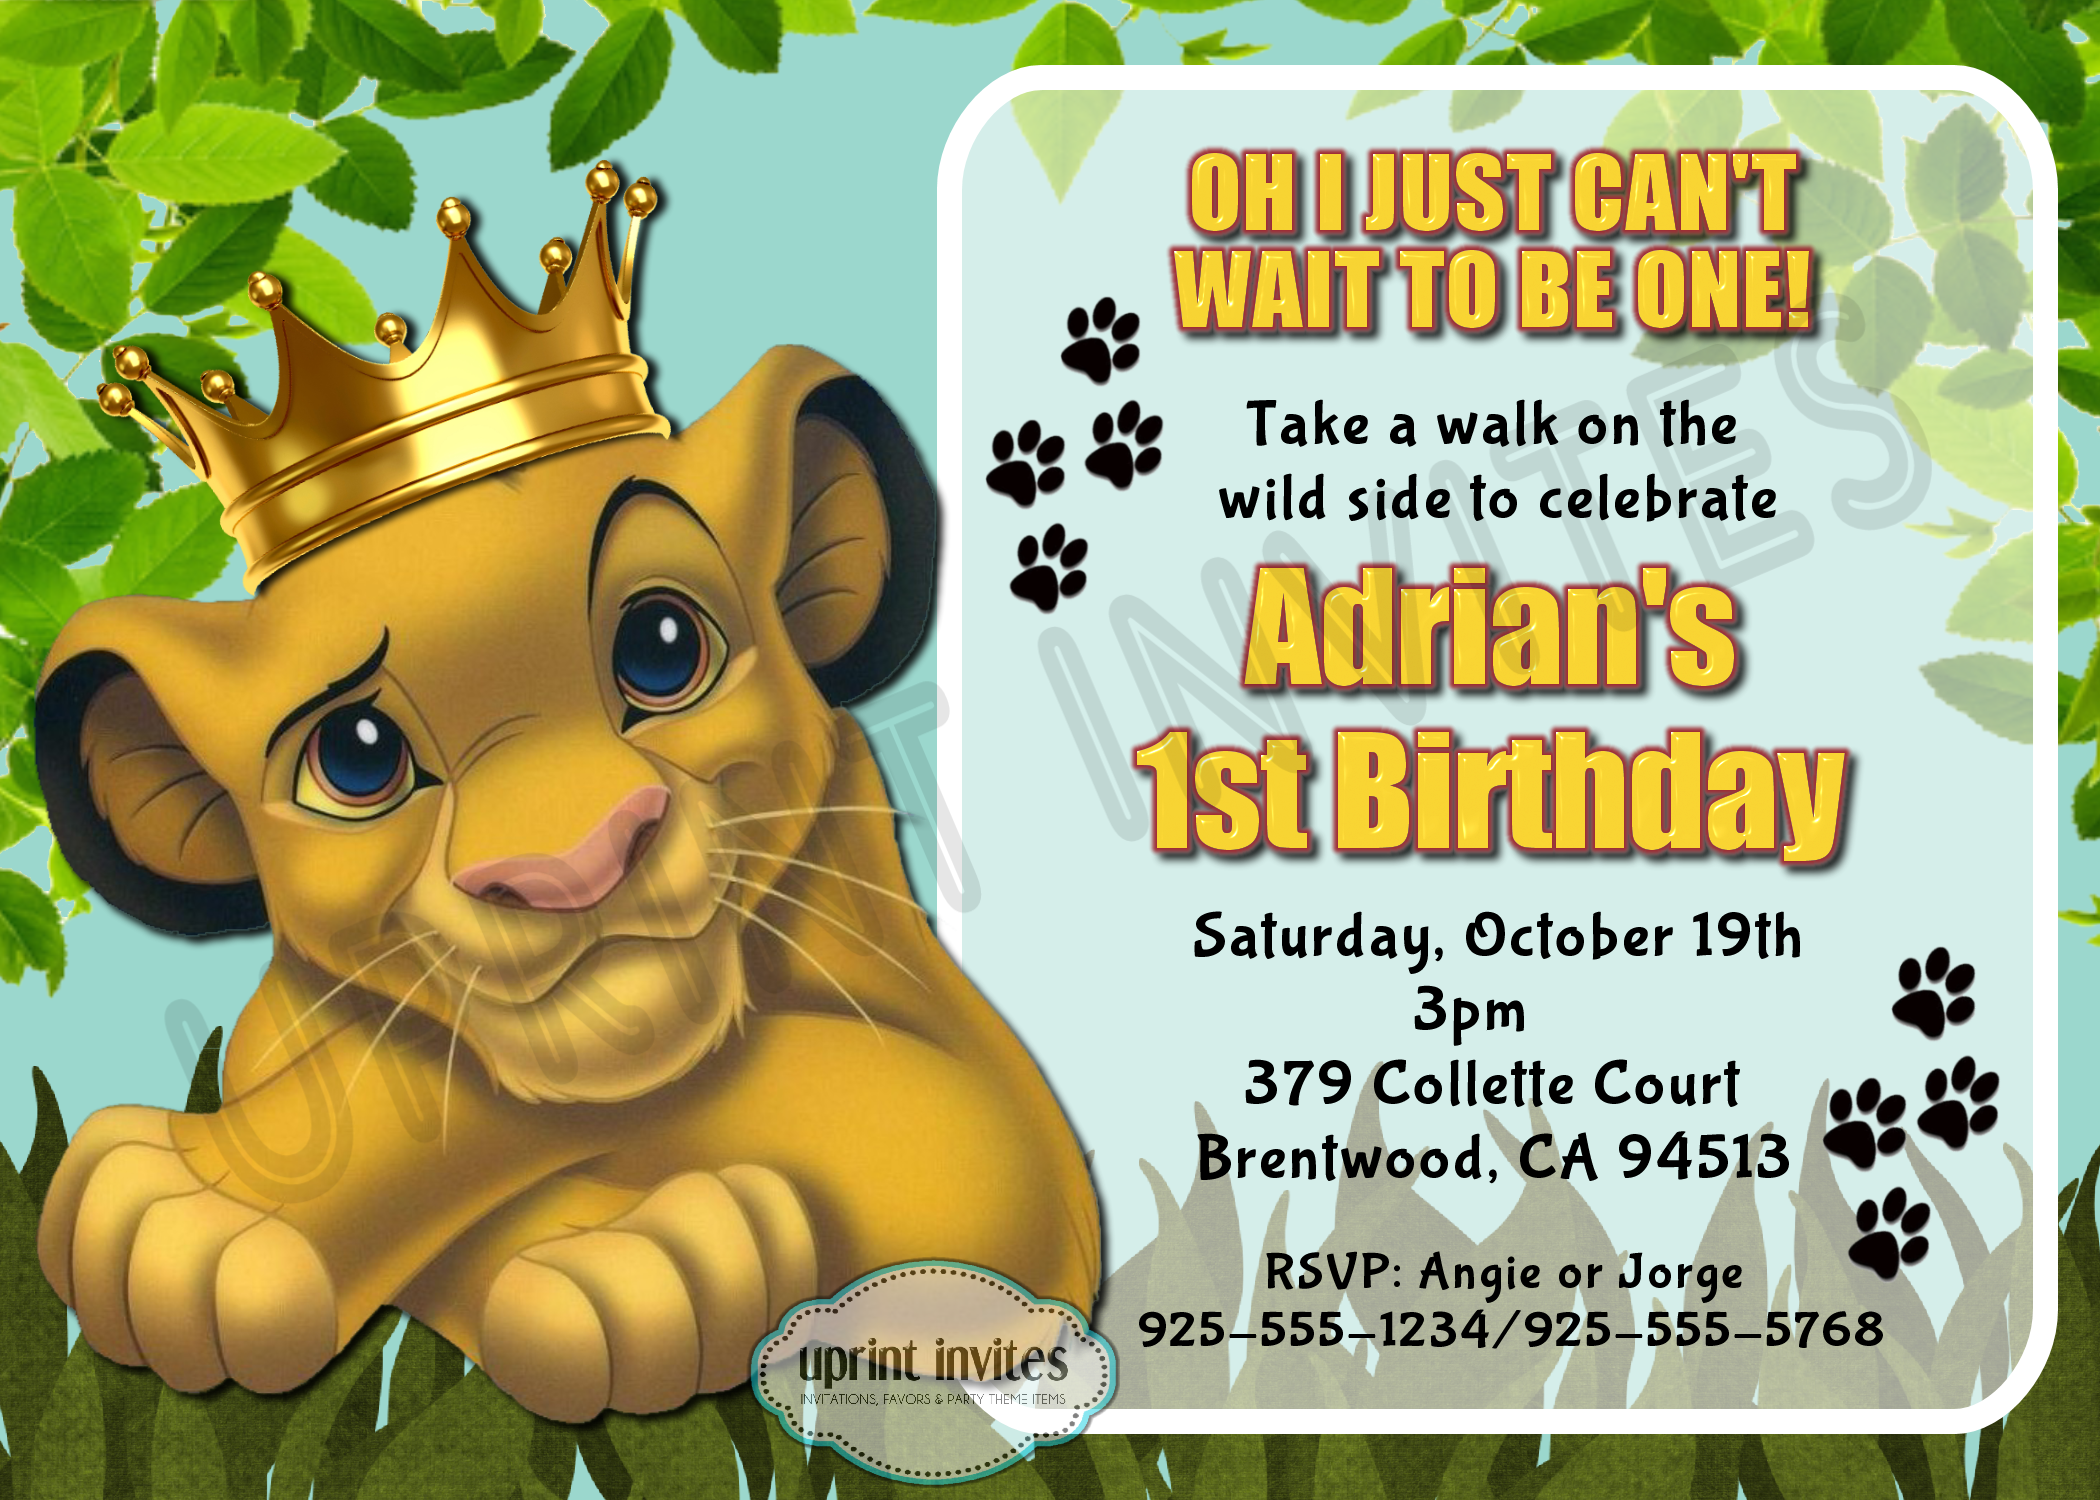 bday party invitation mail%0A Lion king birthday